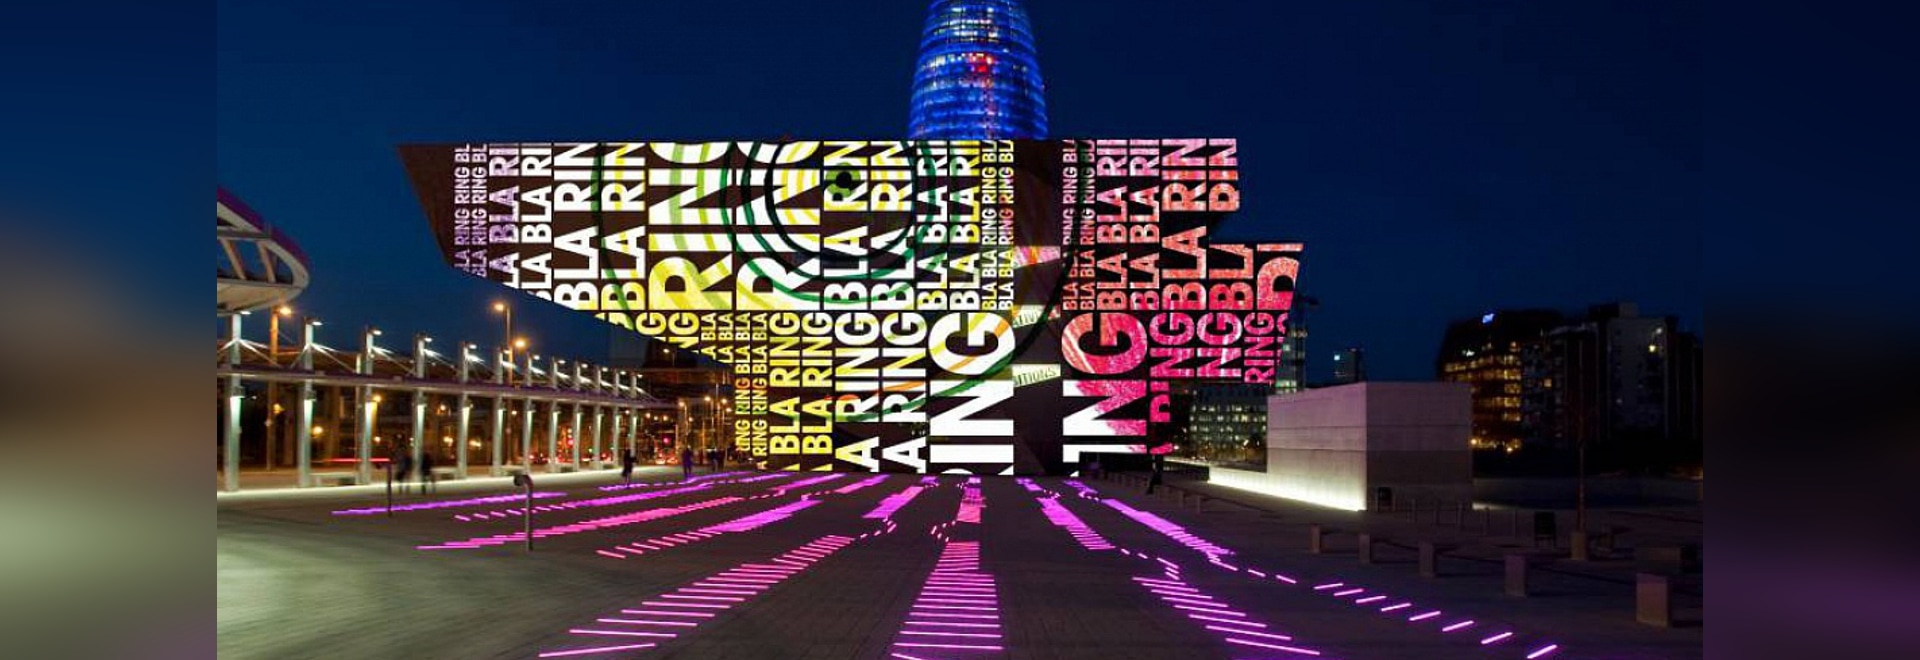 The Xiu Xiu, a projection mapping project. Courtesy of artec3 studio.